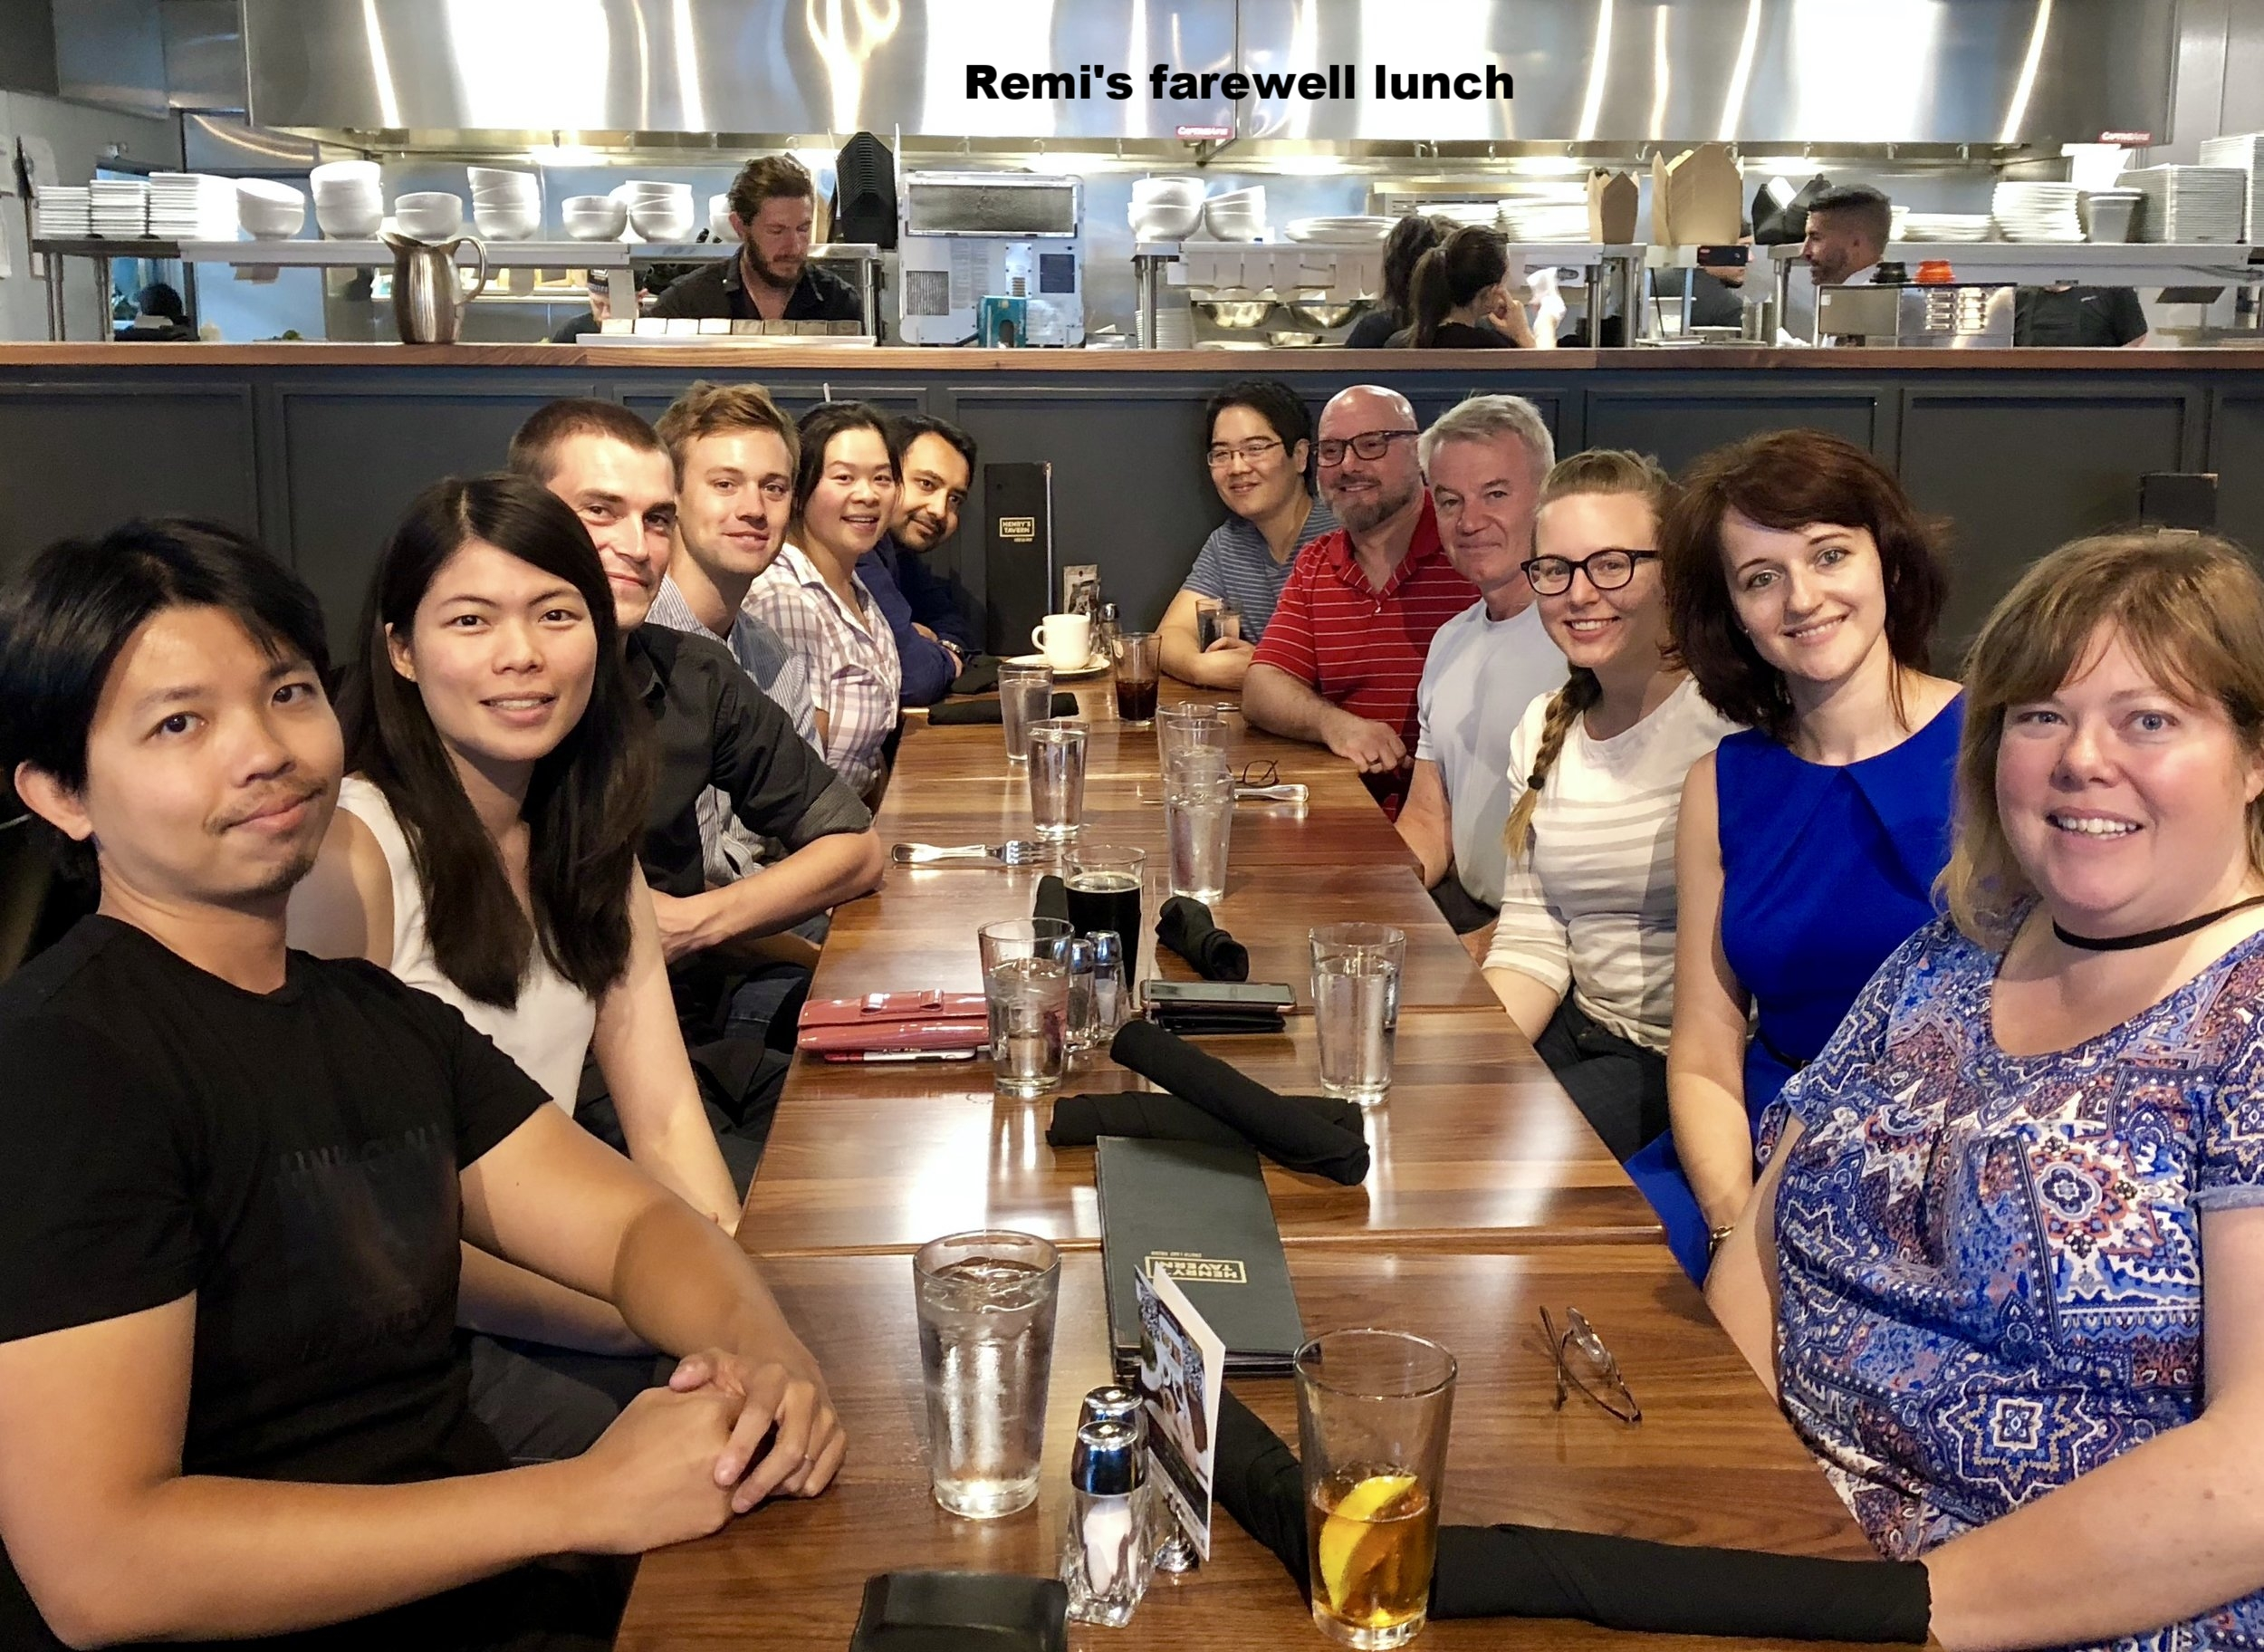 Remi-farewell-lunch_2018.jpg